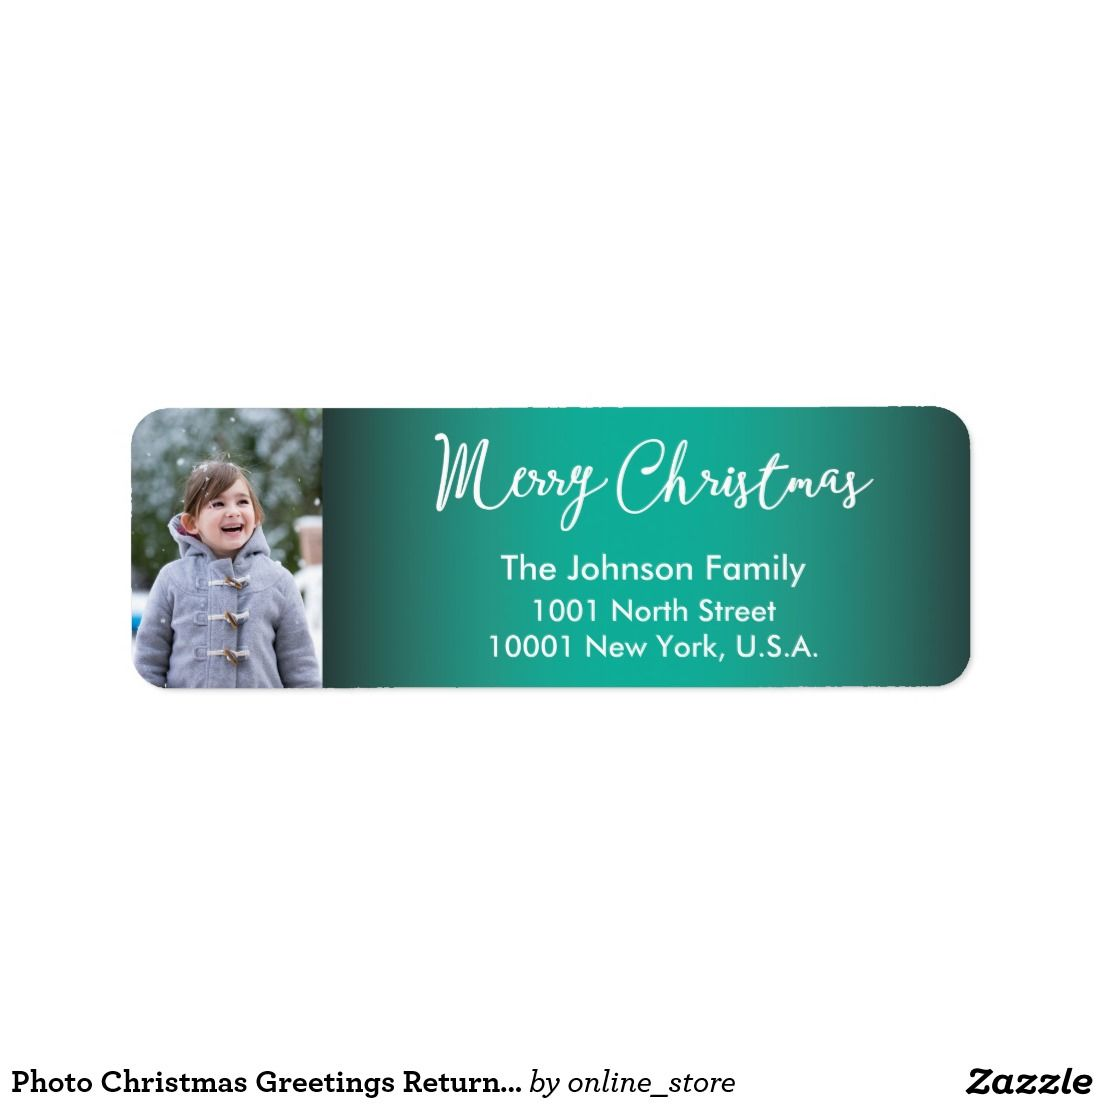 Photo Christmas Greetings Return Address Labels All Zazzle